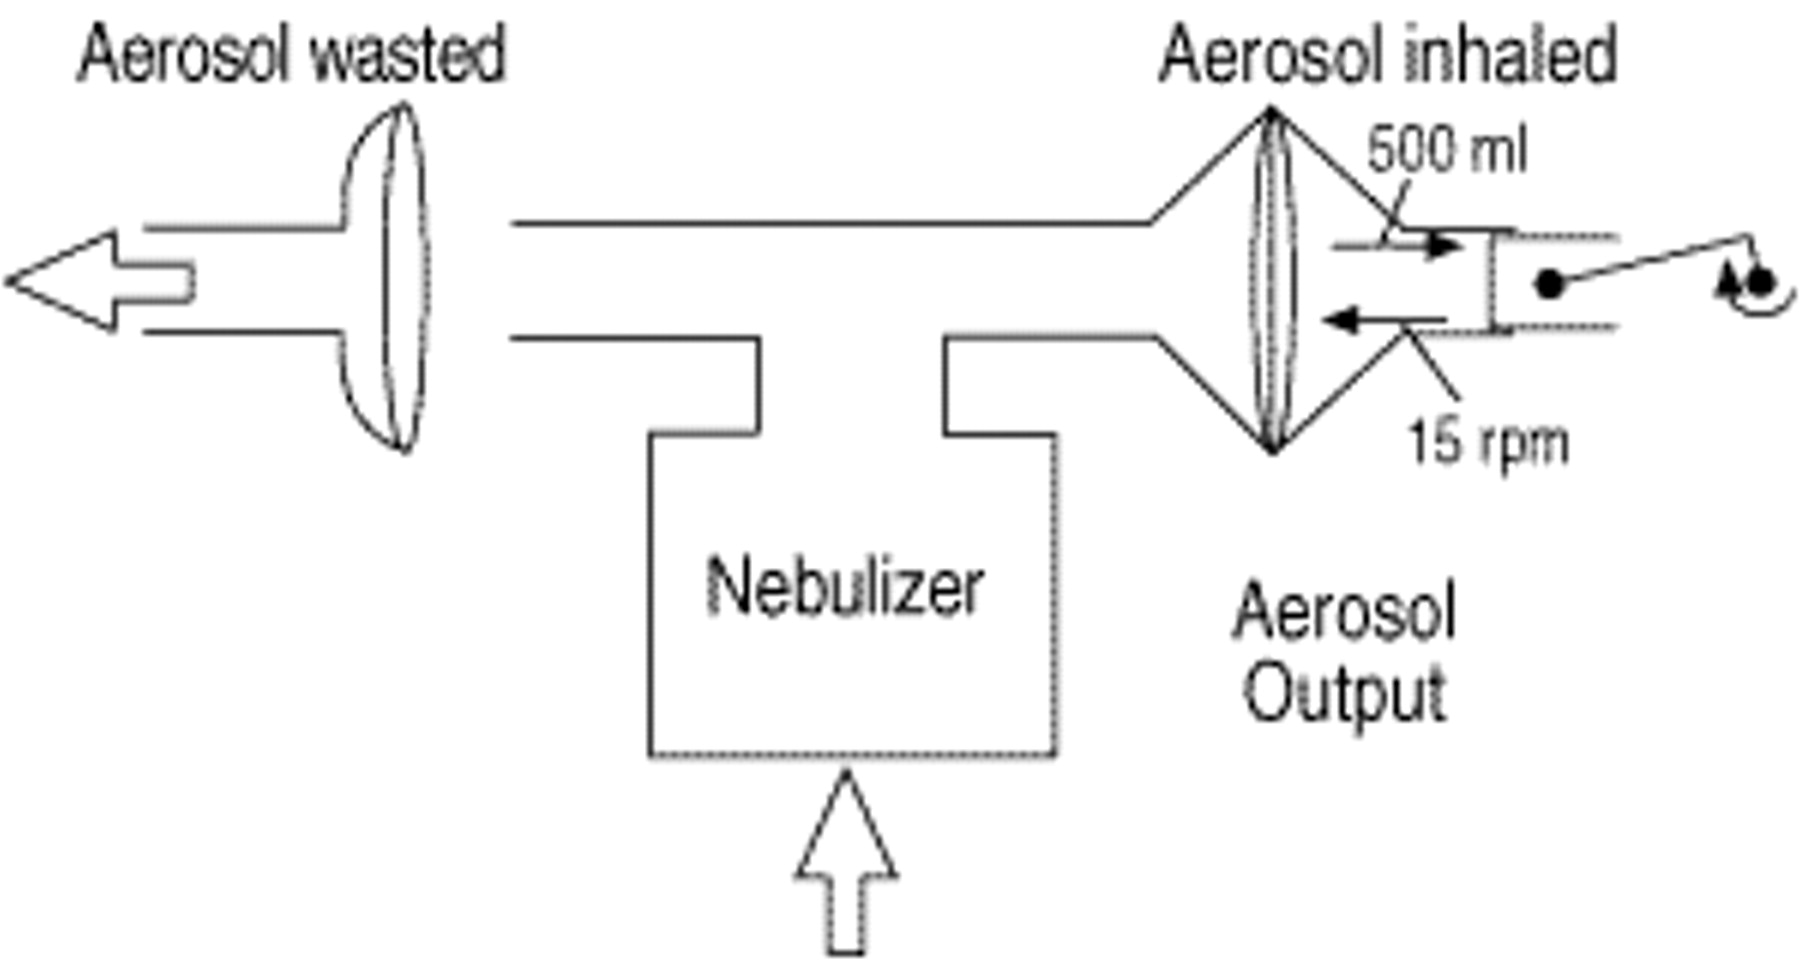 European Respiratory Society Guidelines on the use of nebulizers